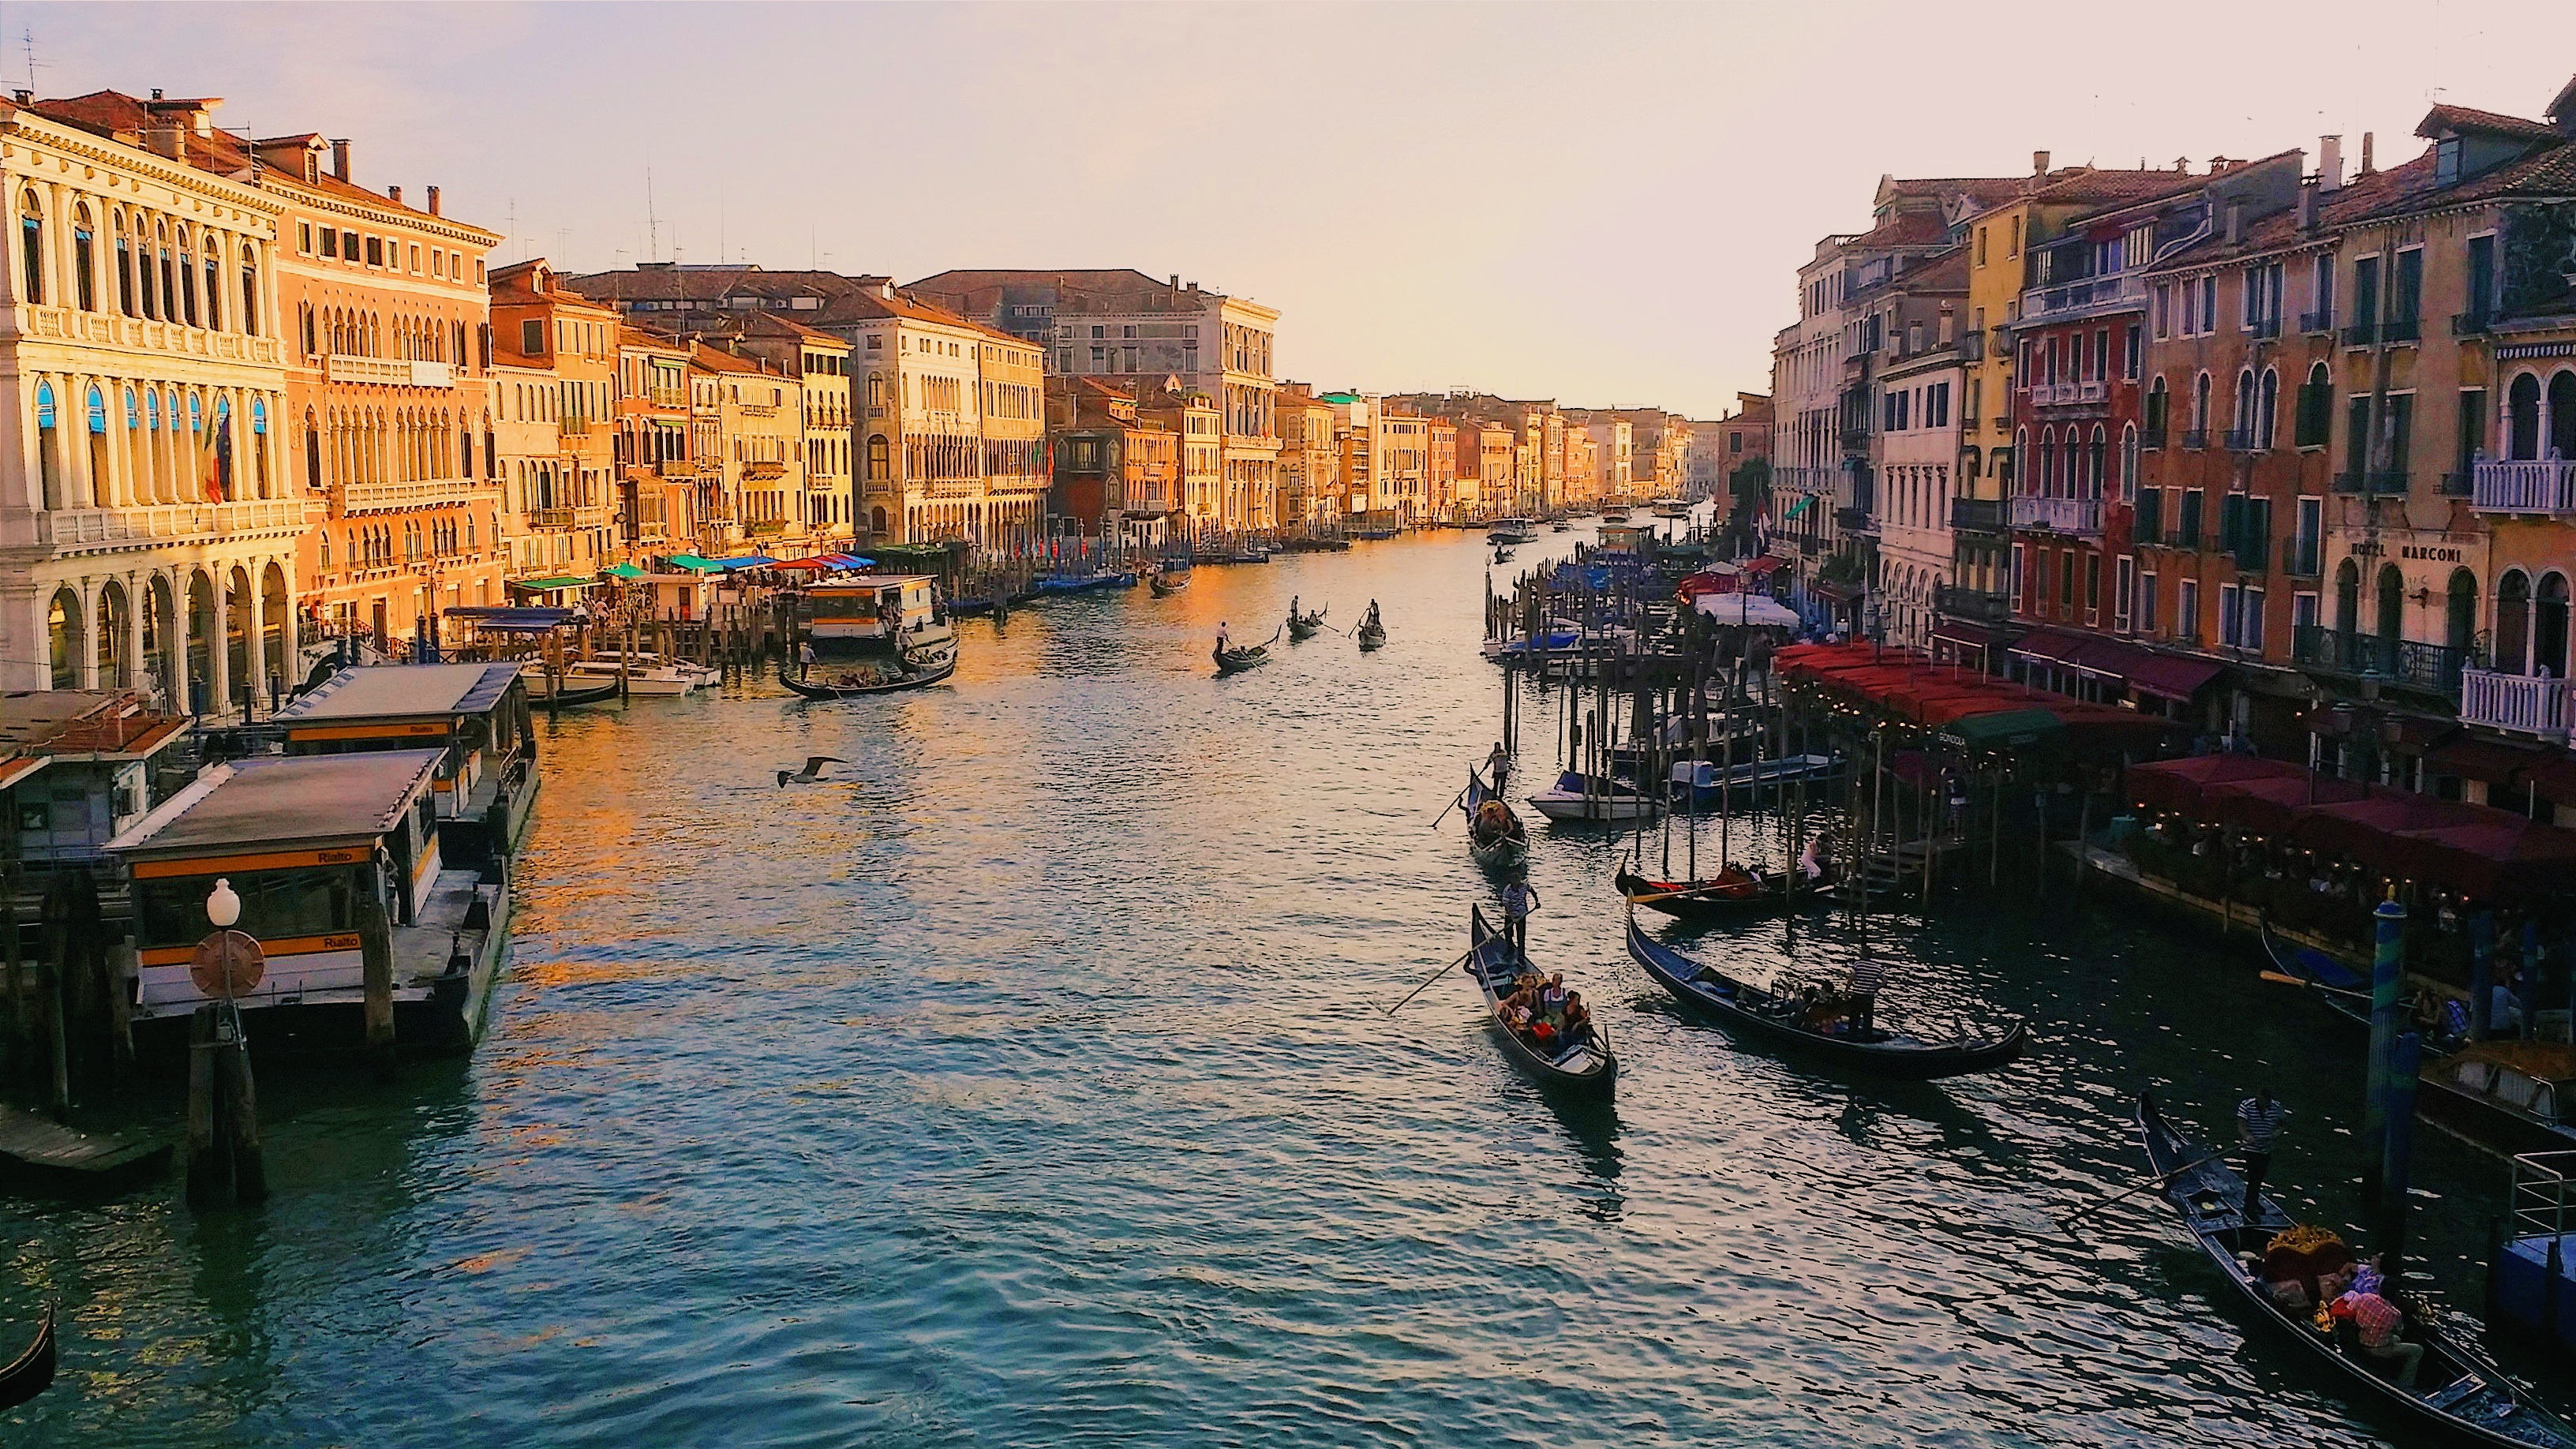 looking-at-the-grand-canal-of-venice-in-modern-times